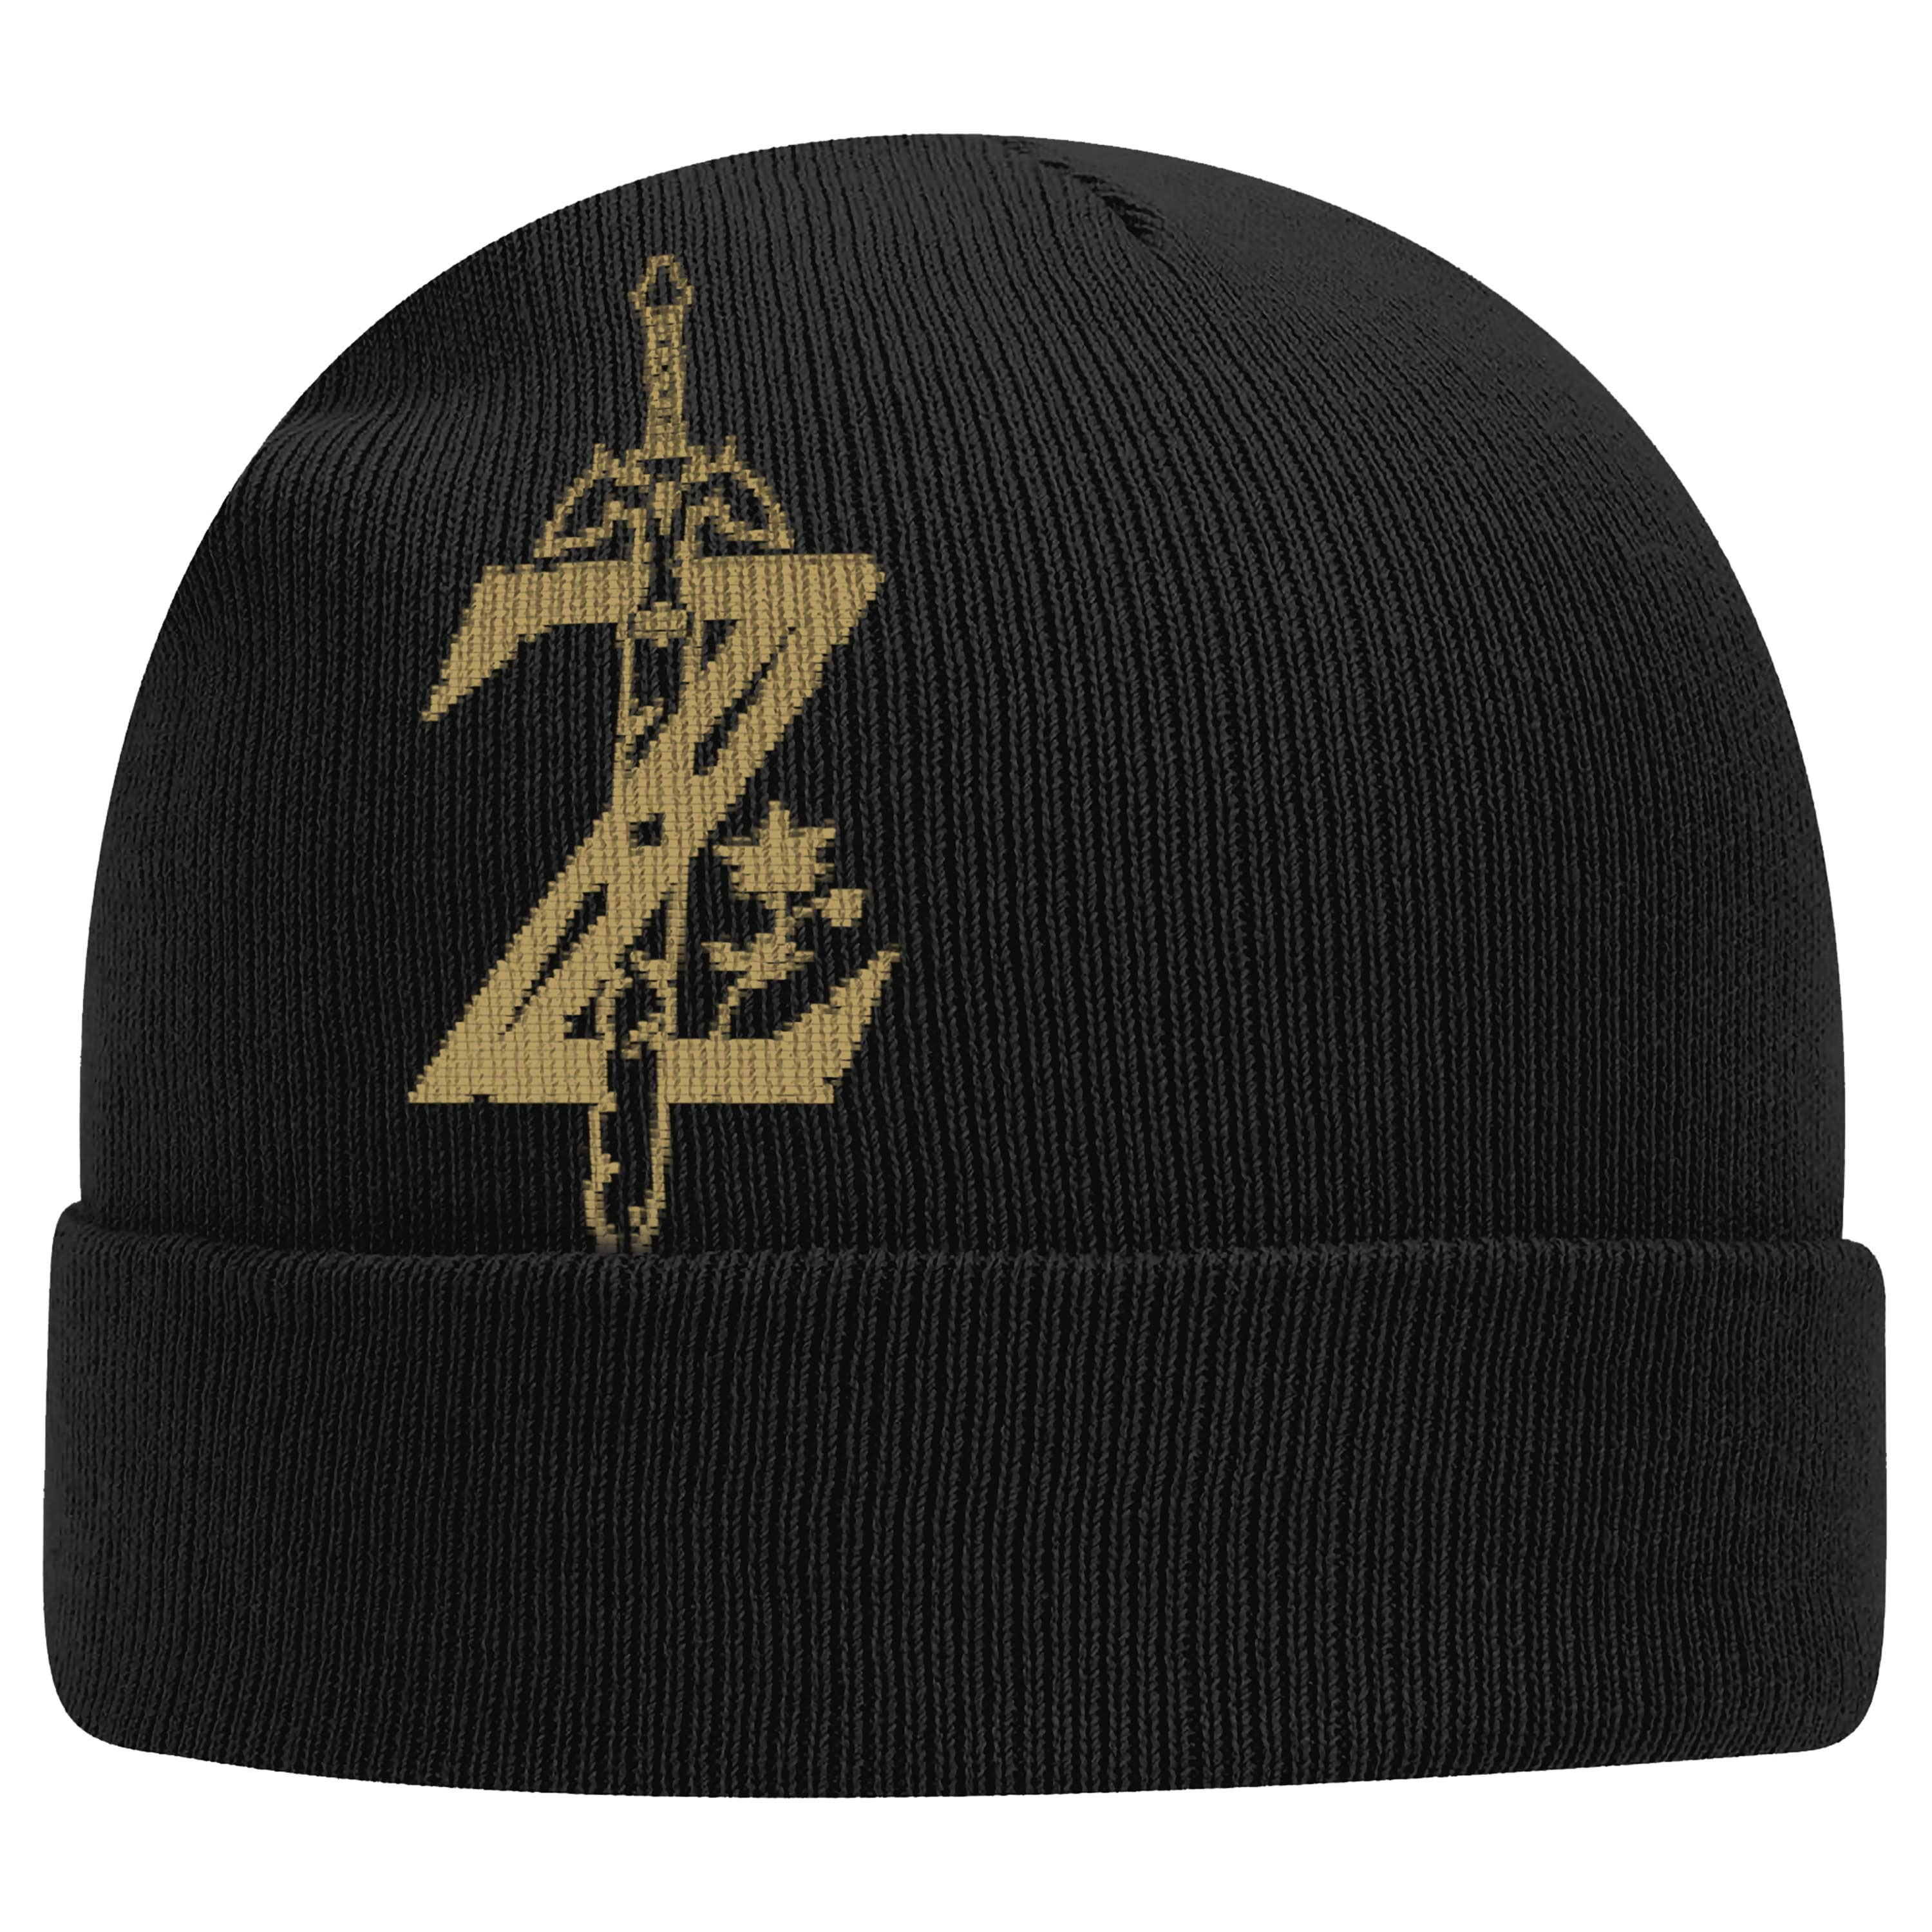 "The Legend of Zelda: Breath of the Wild™ ""Z with Sword"" Knitted Cap - Officially Licensed by Nintendo"